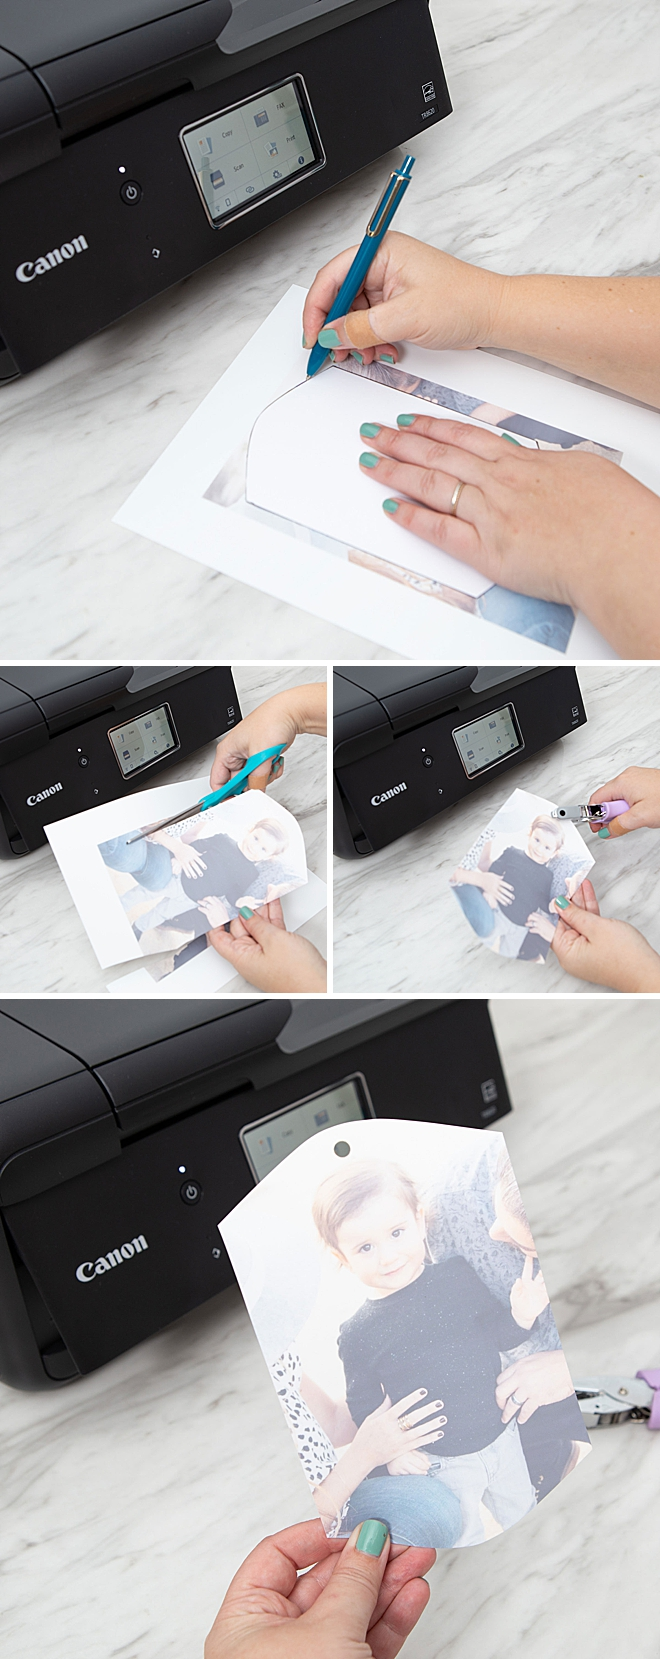 How to print Shrinky-Dink photos with Canon PIXMA!